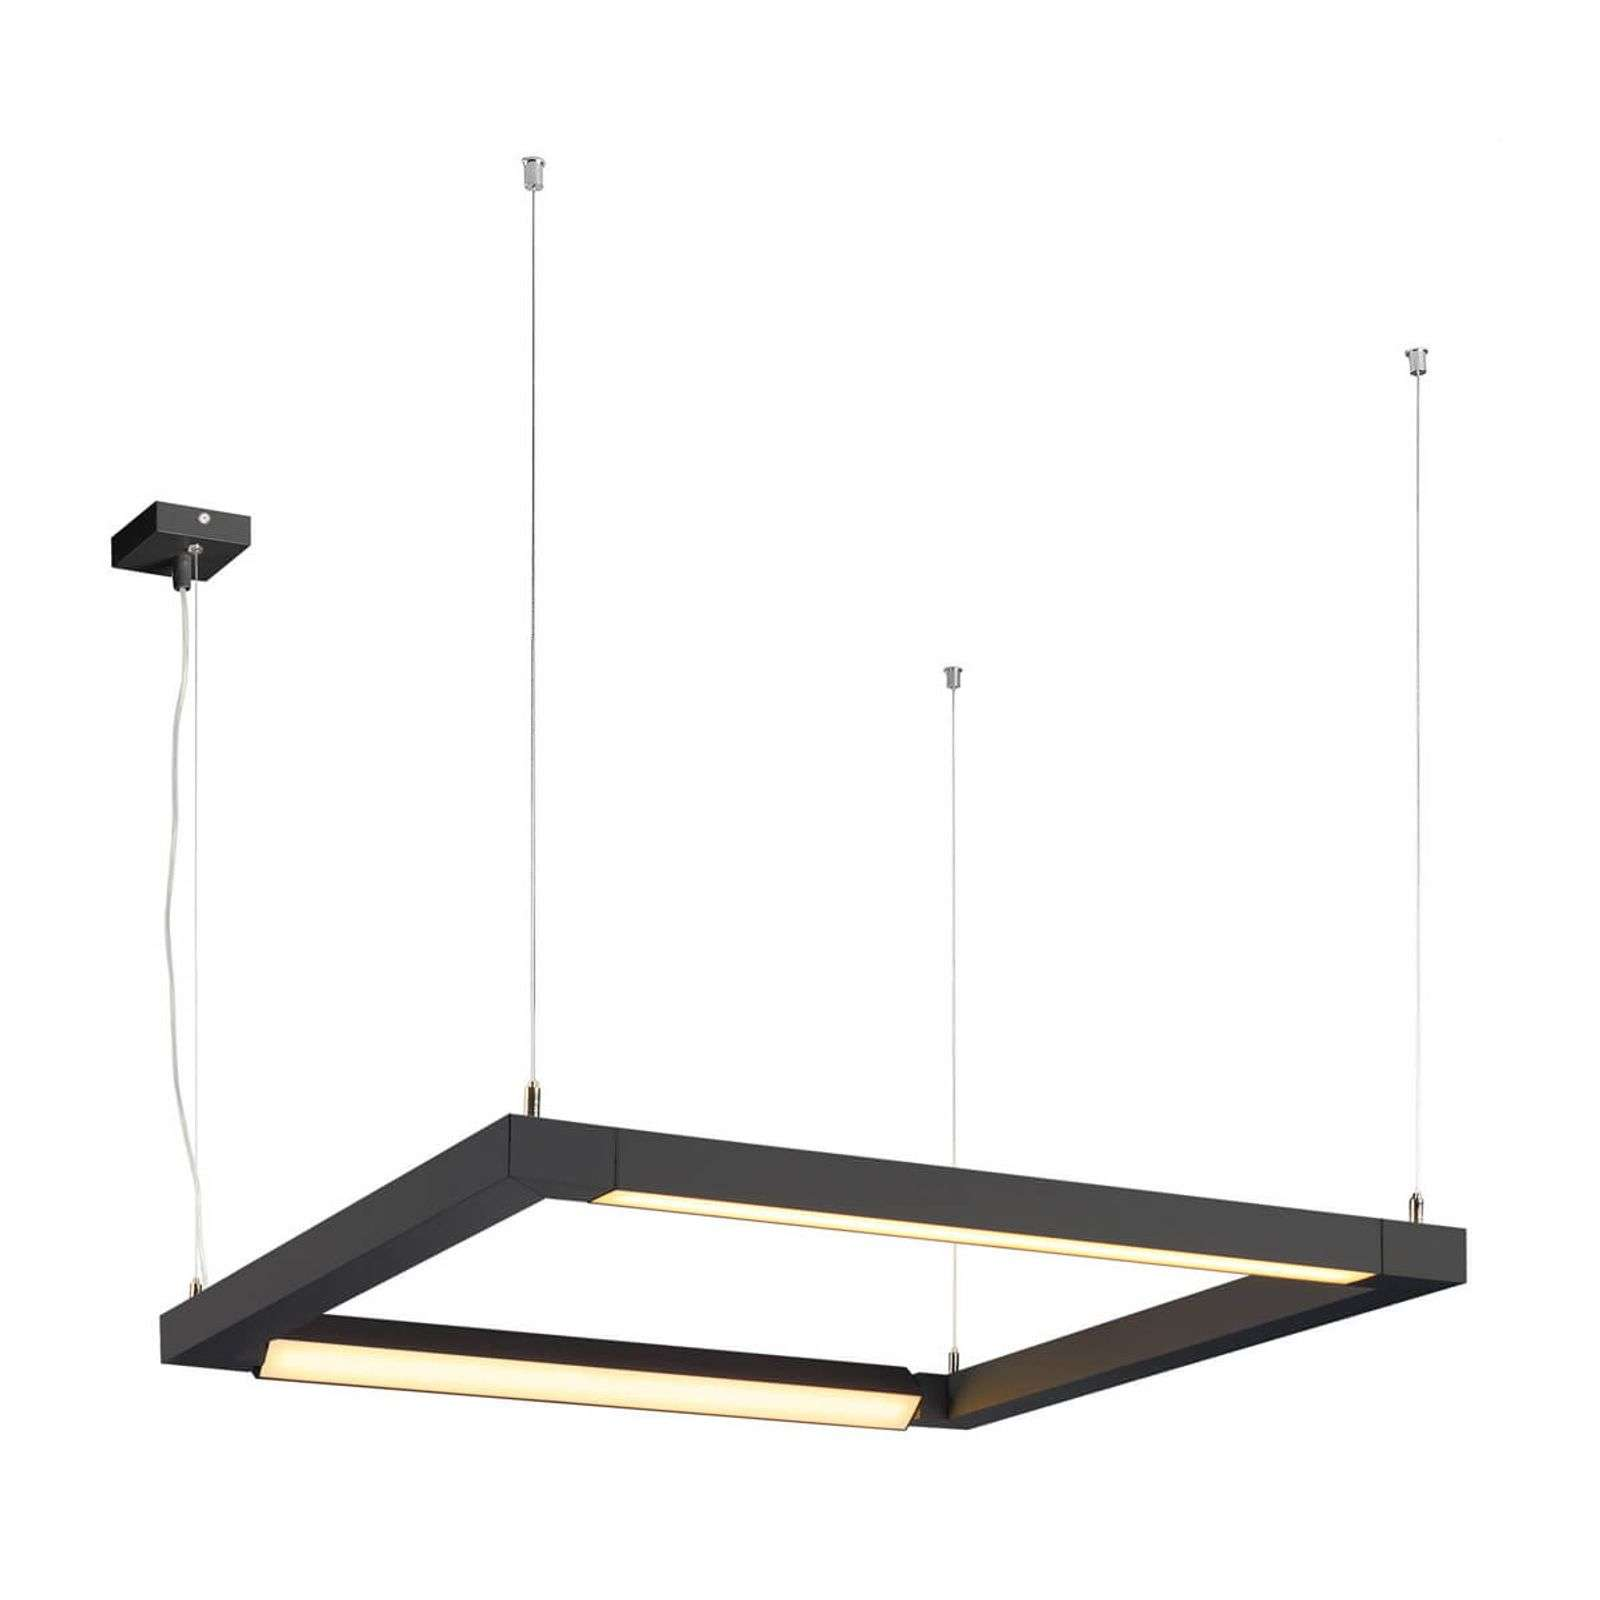 Suspension LED Open Grill noire, 2 lampes